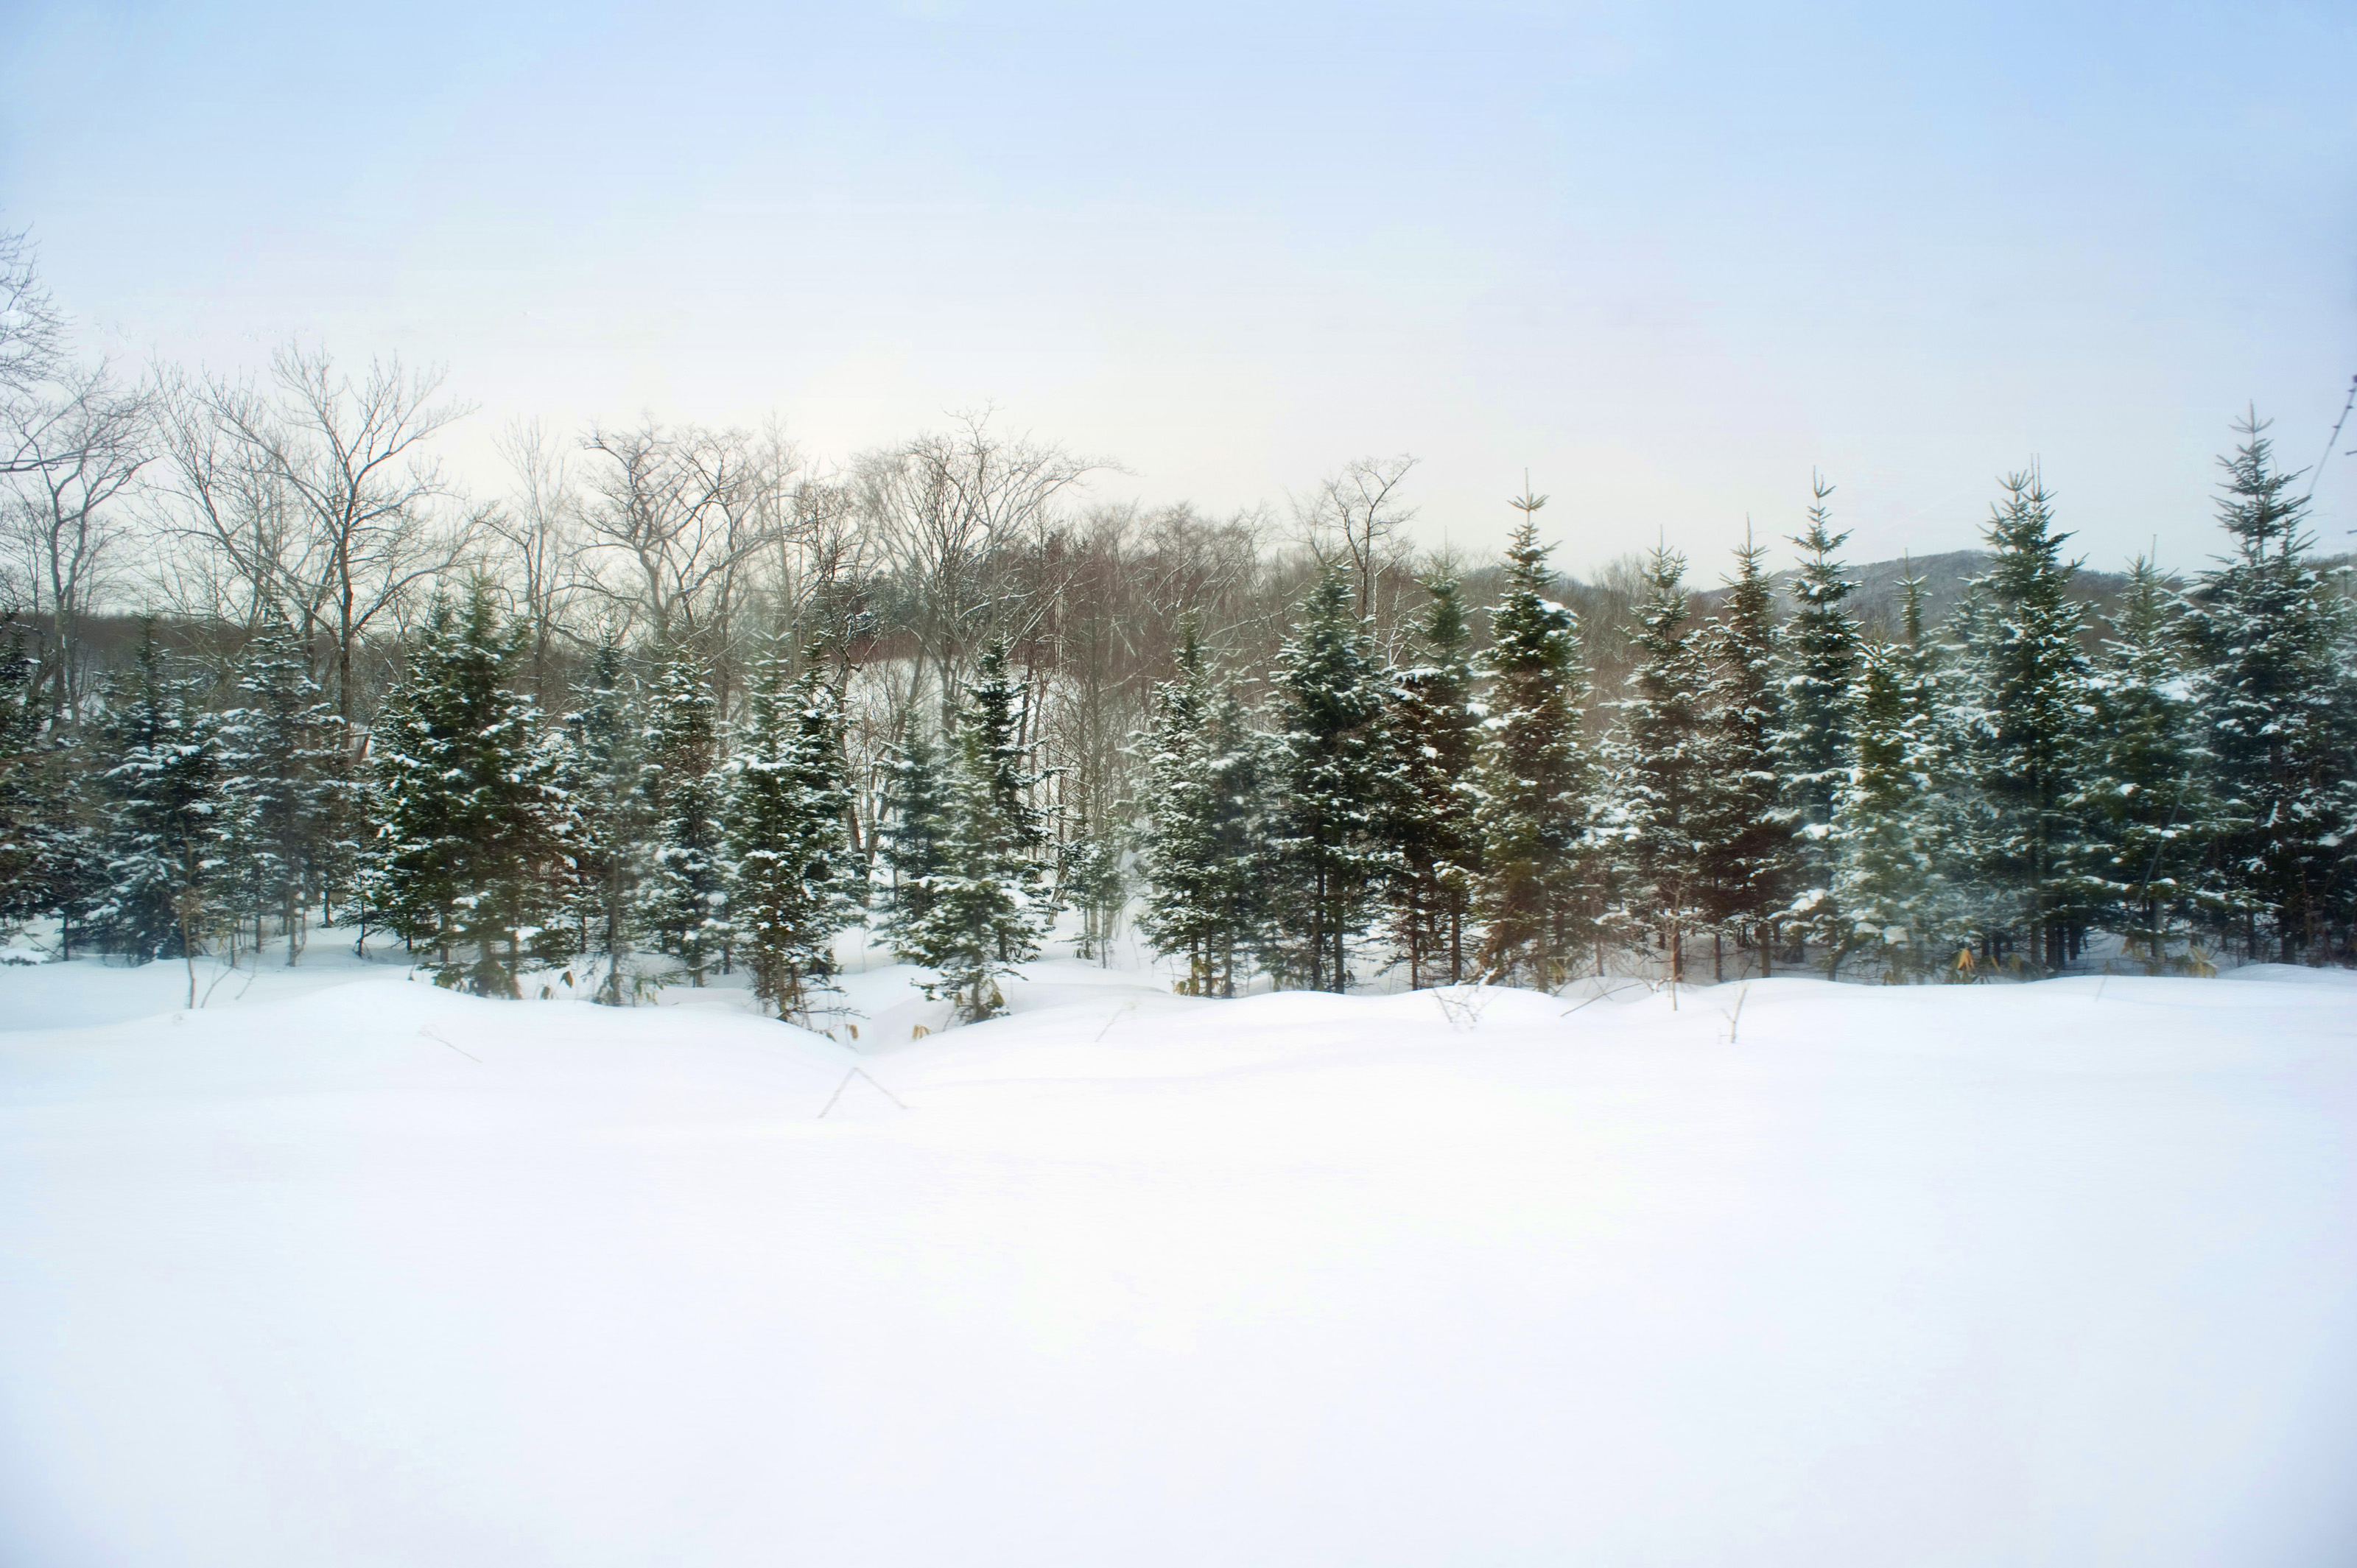 Winter pine trees 5587 stockarch free stock photos - Images of pine trees in snow ...